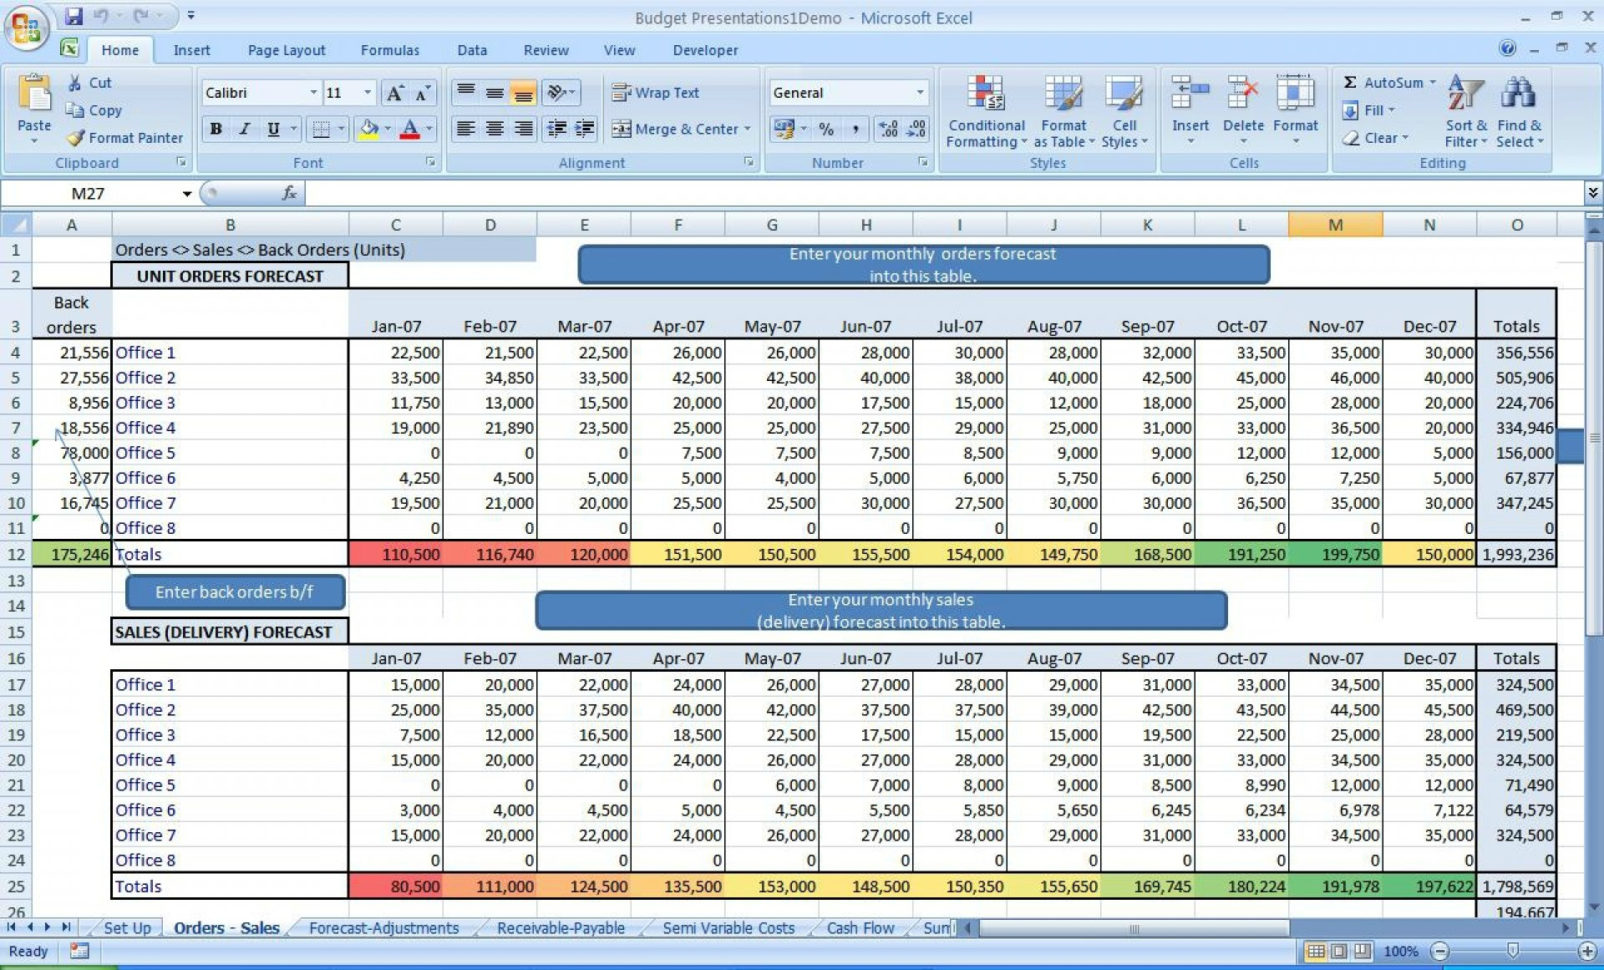 Excel Spreadsheet Balance Sheet For 009 Microsoft Excel Spreadsheet Free Download Unique Templates For